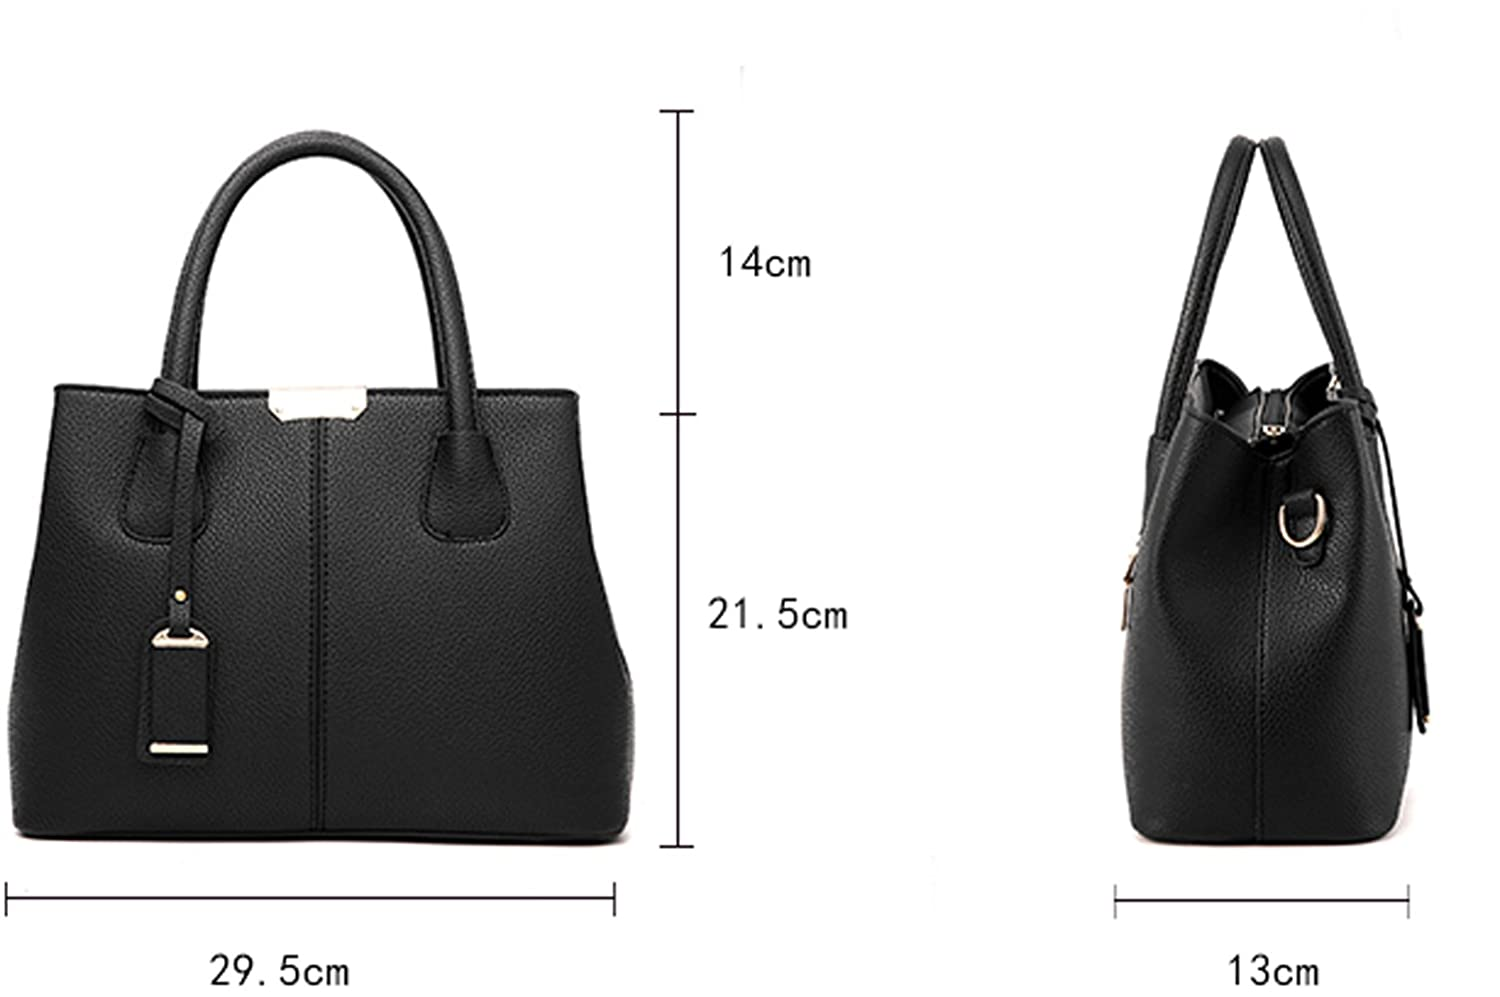 Covelin Womens Top-handle Cross Body Handbag Middle Size Purse Durable Leather Tote Bag J-HB055-P